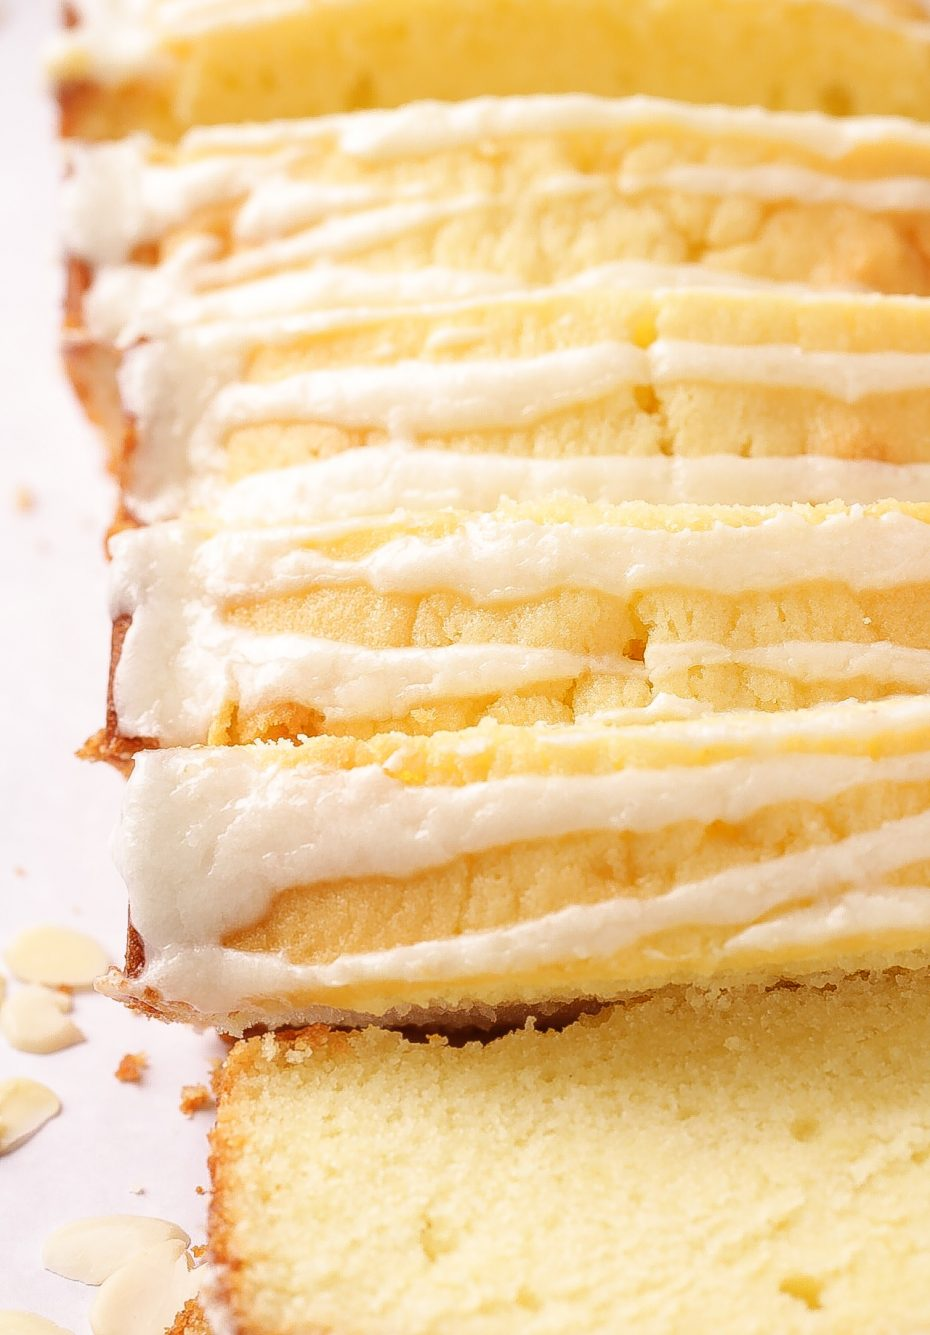 A luscious Almond Pound Cake made with buttermilk and topped with a dreamy almond glaze. | Beat Bake Eat